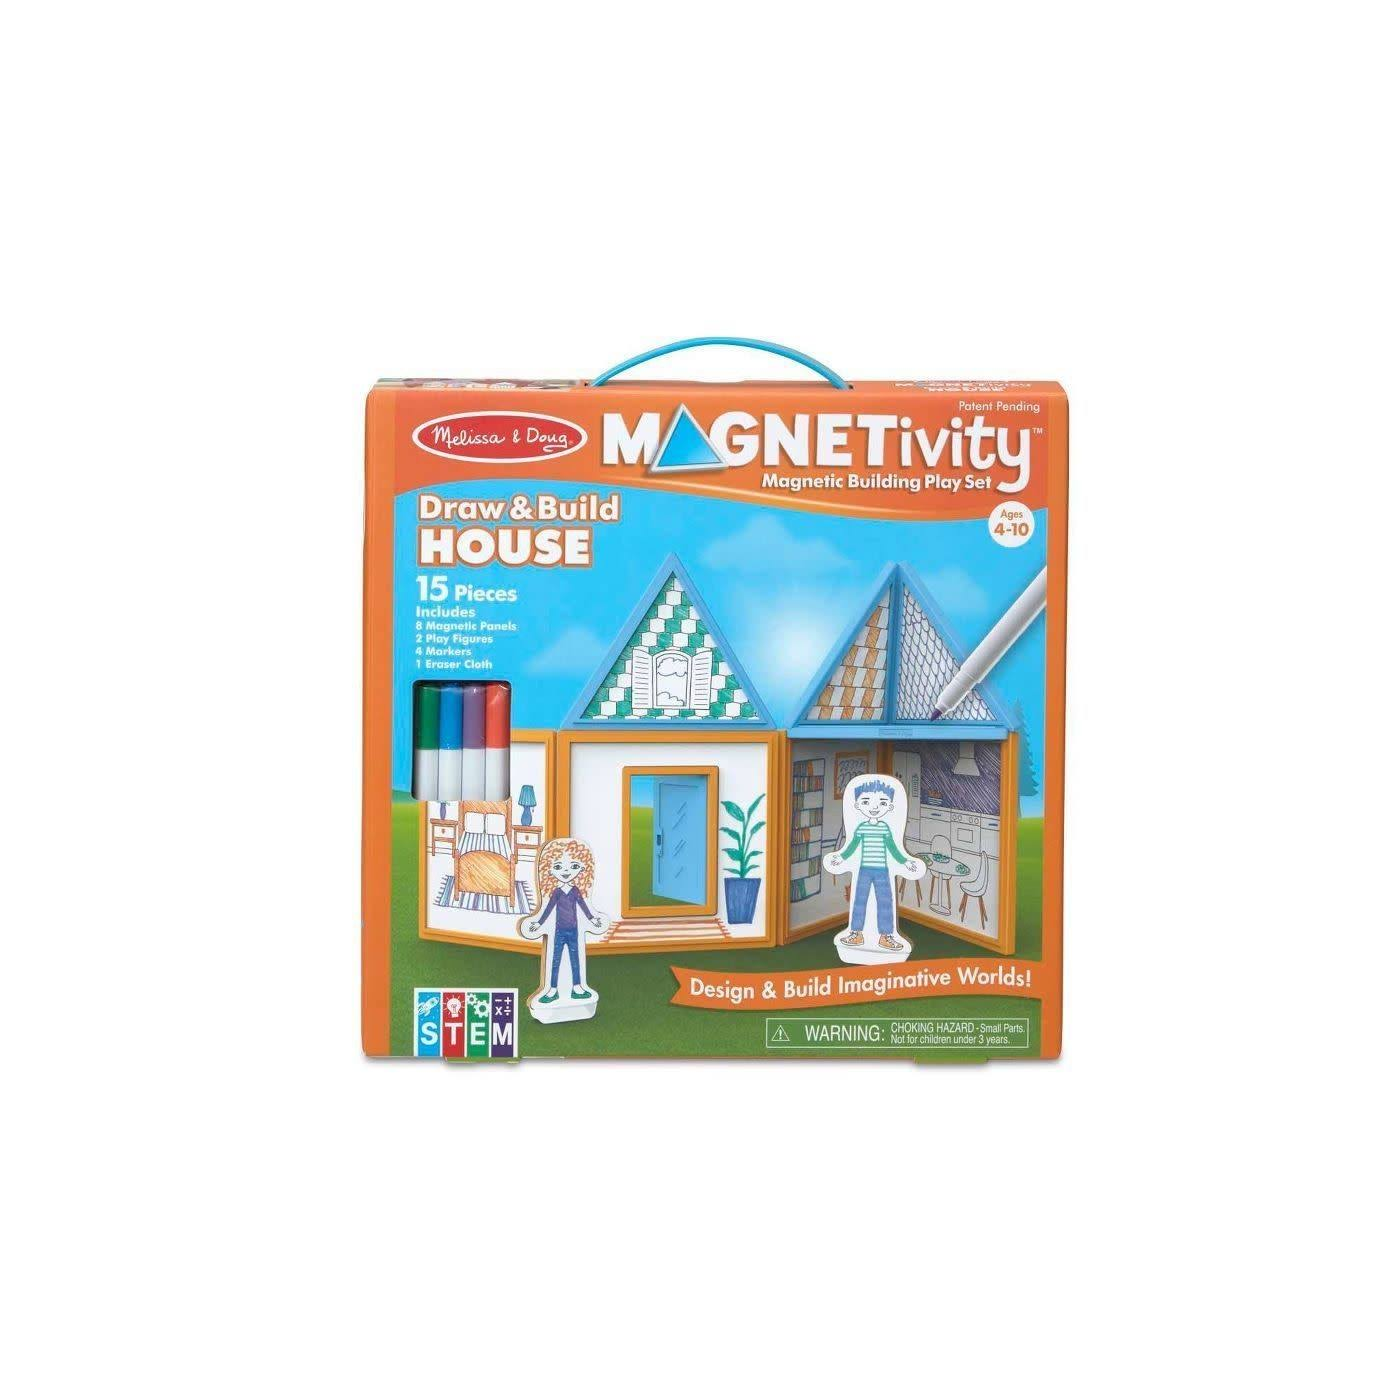 Melissa & Doug Magnetivity Magnetic Building Play Set- Draw & Build House